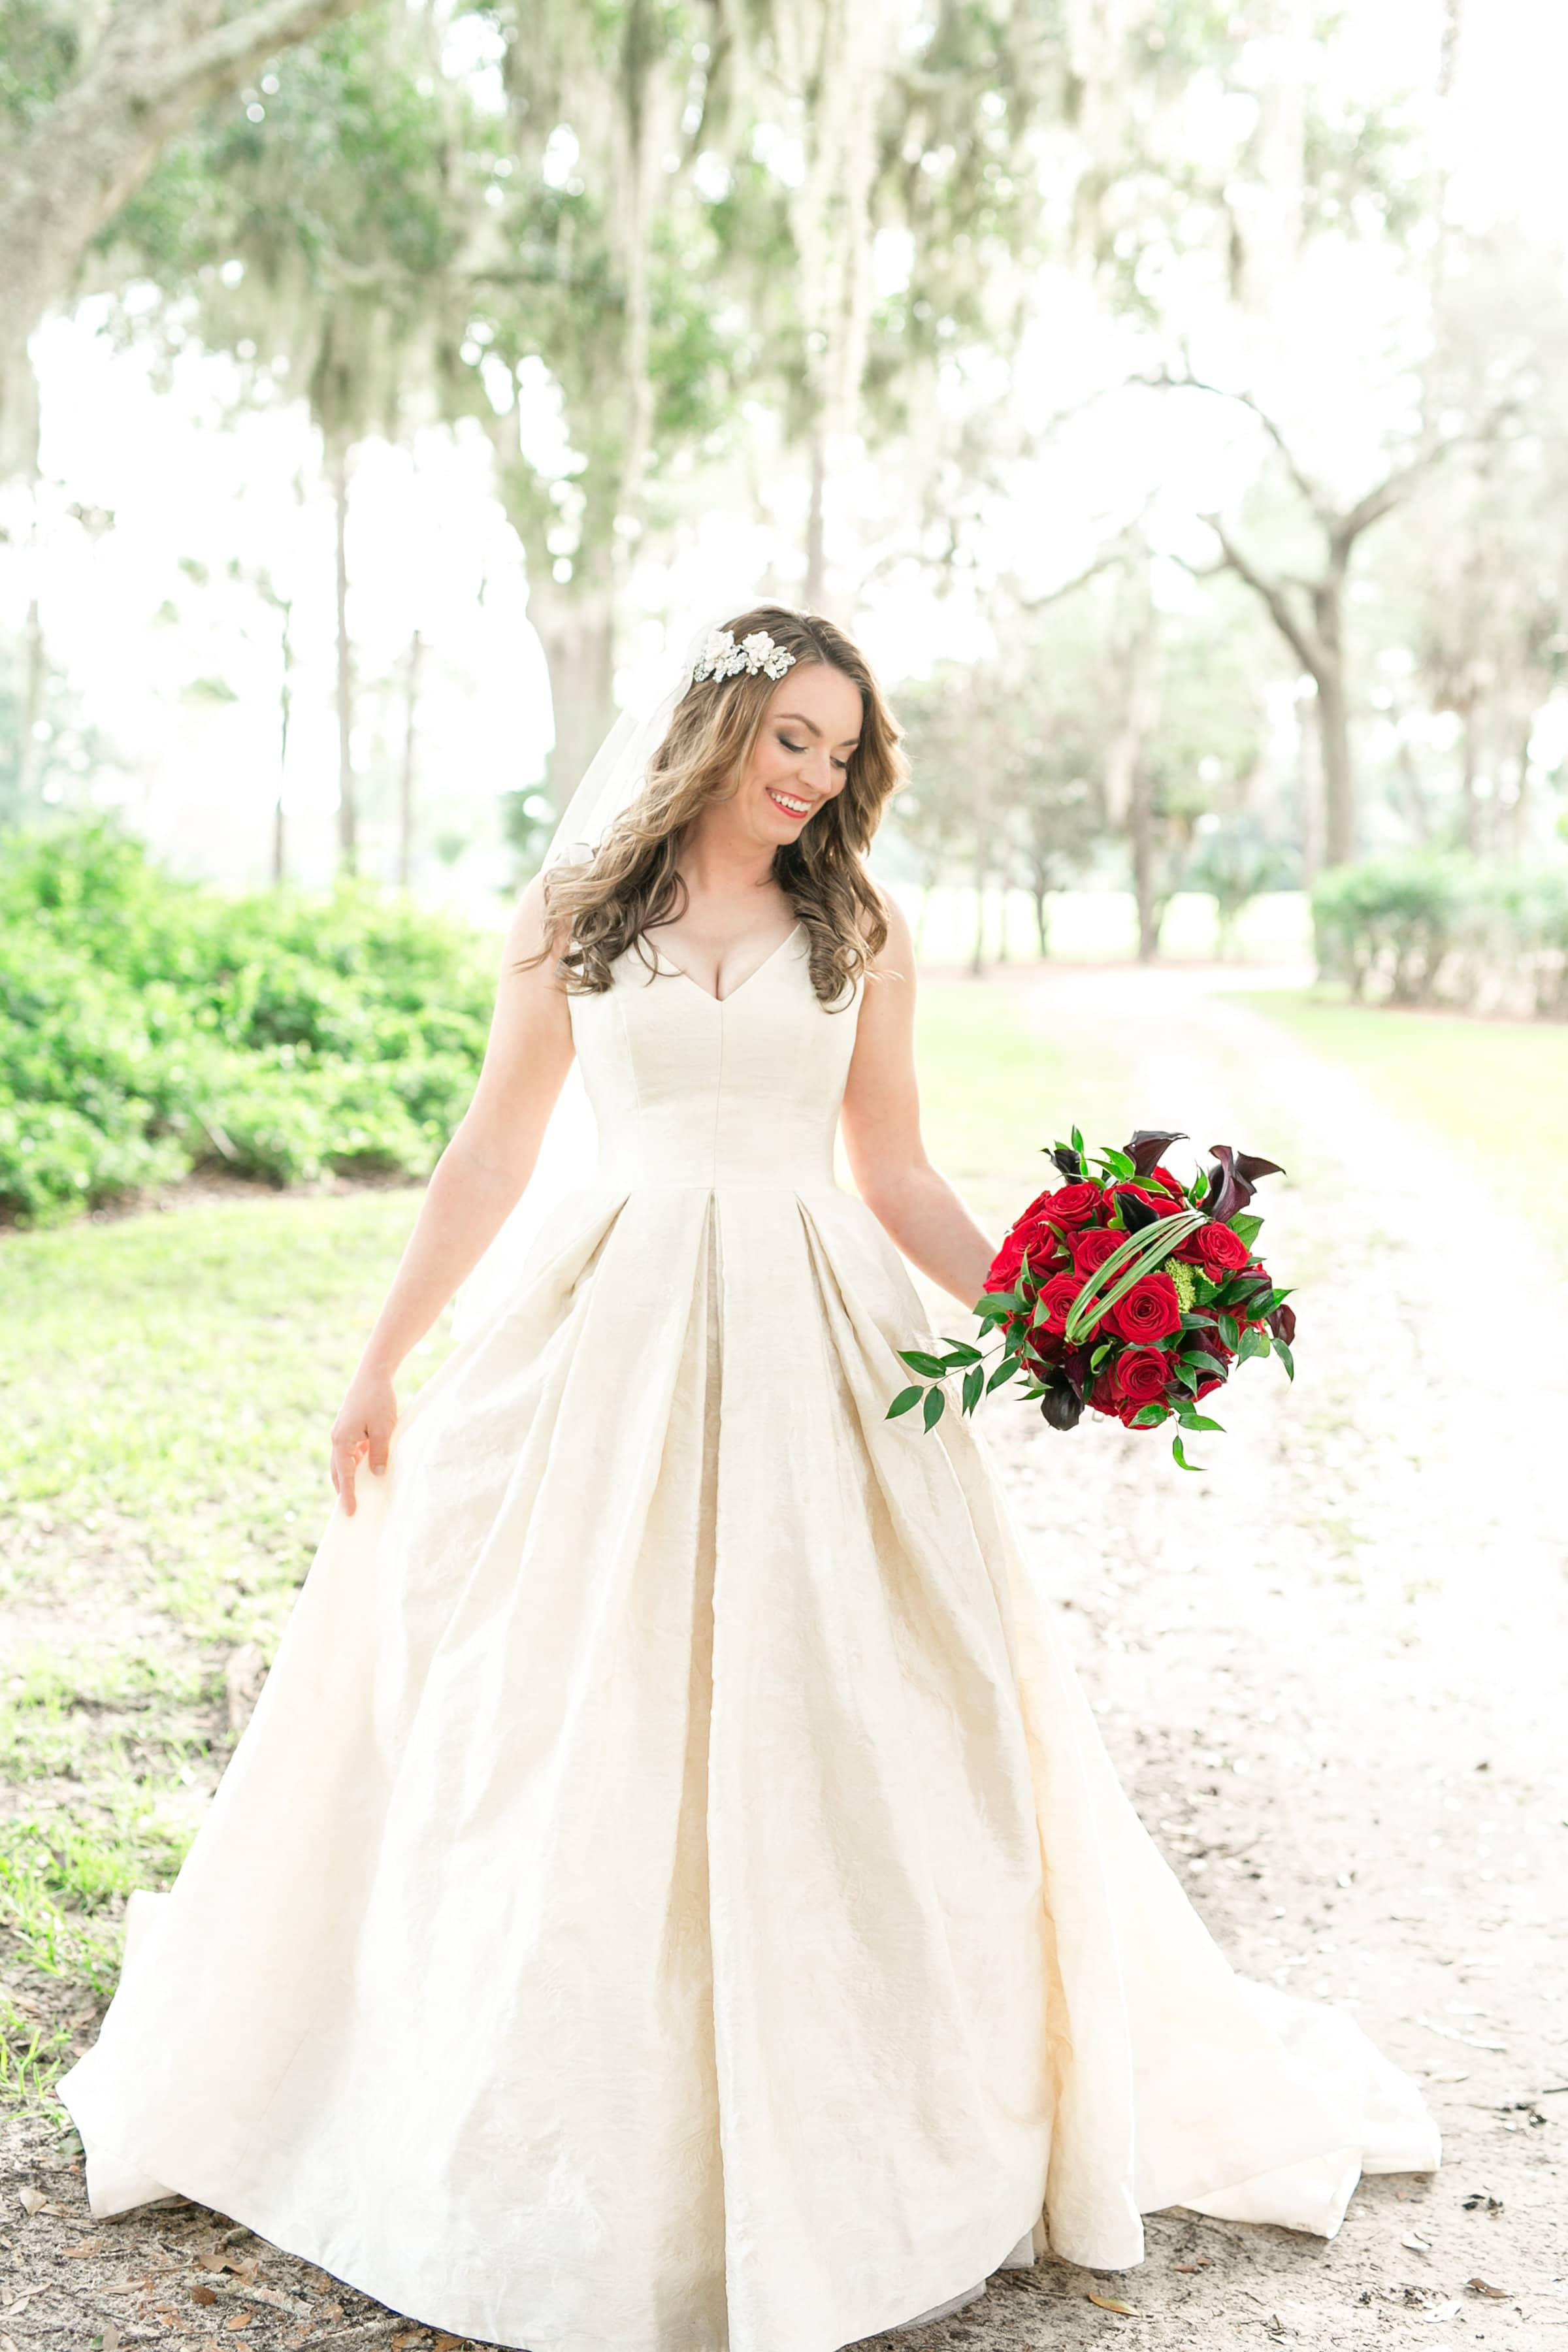 Beautiful bride with red bouquet